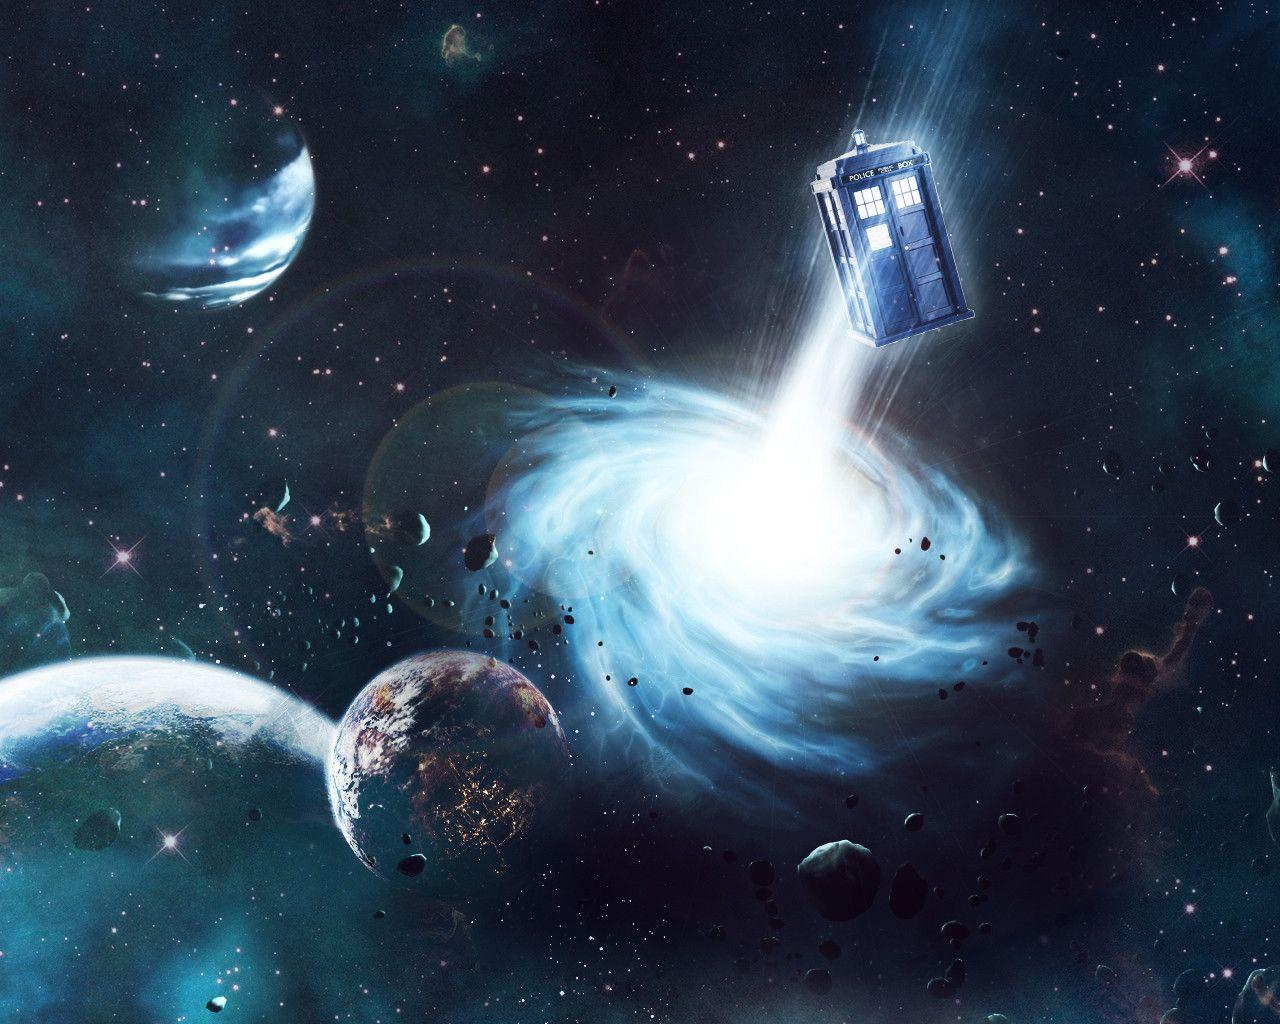 space travel wallpapers - photo #27